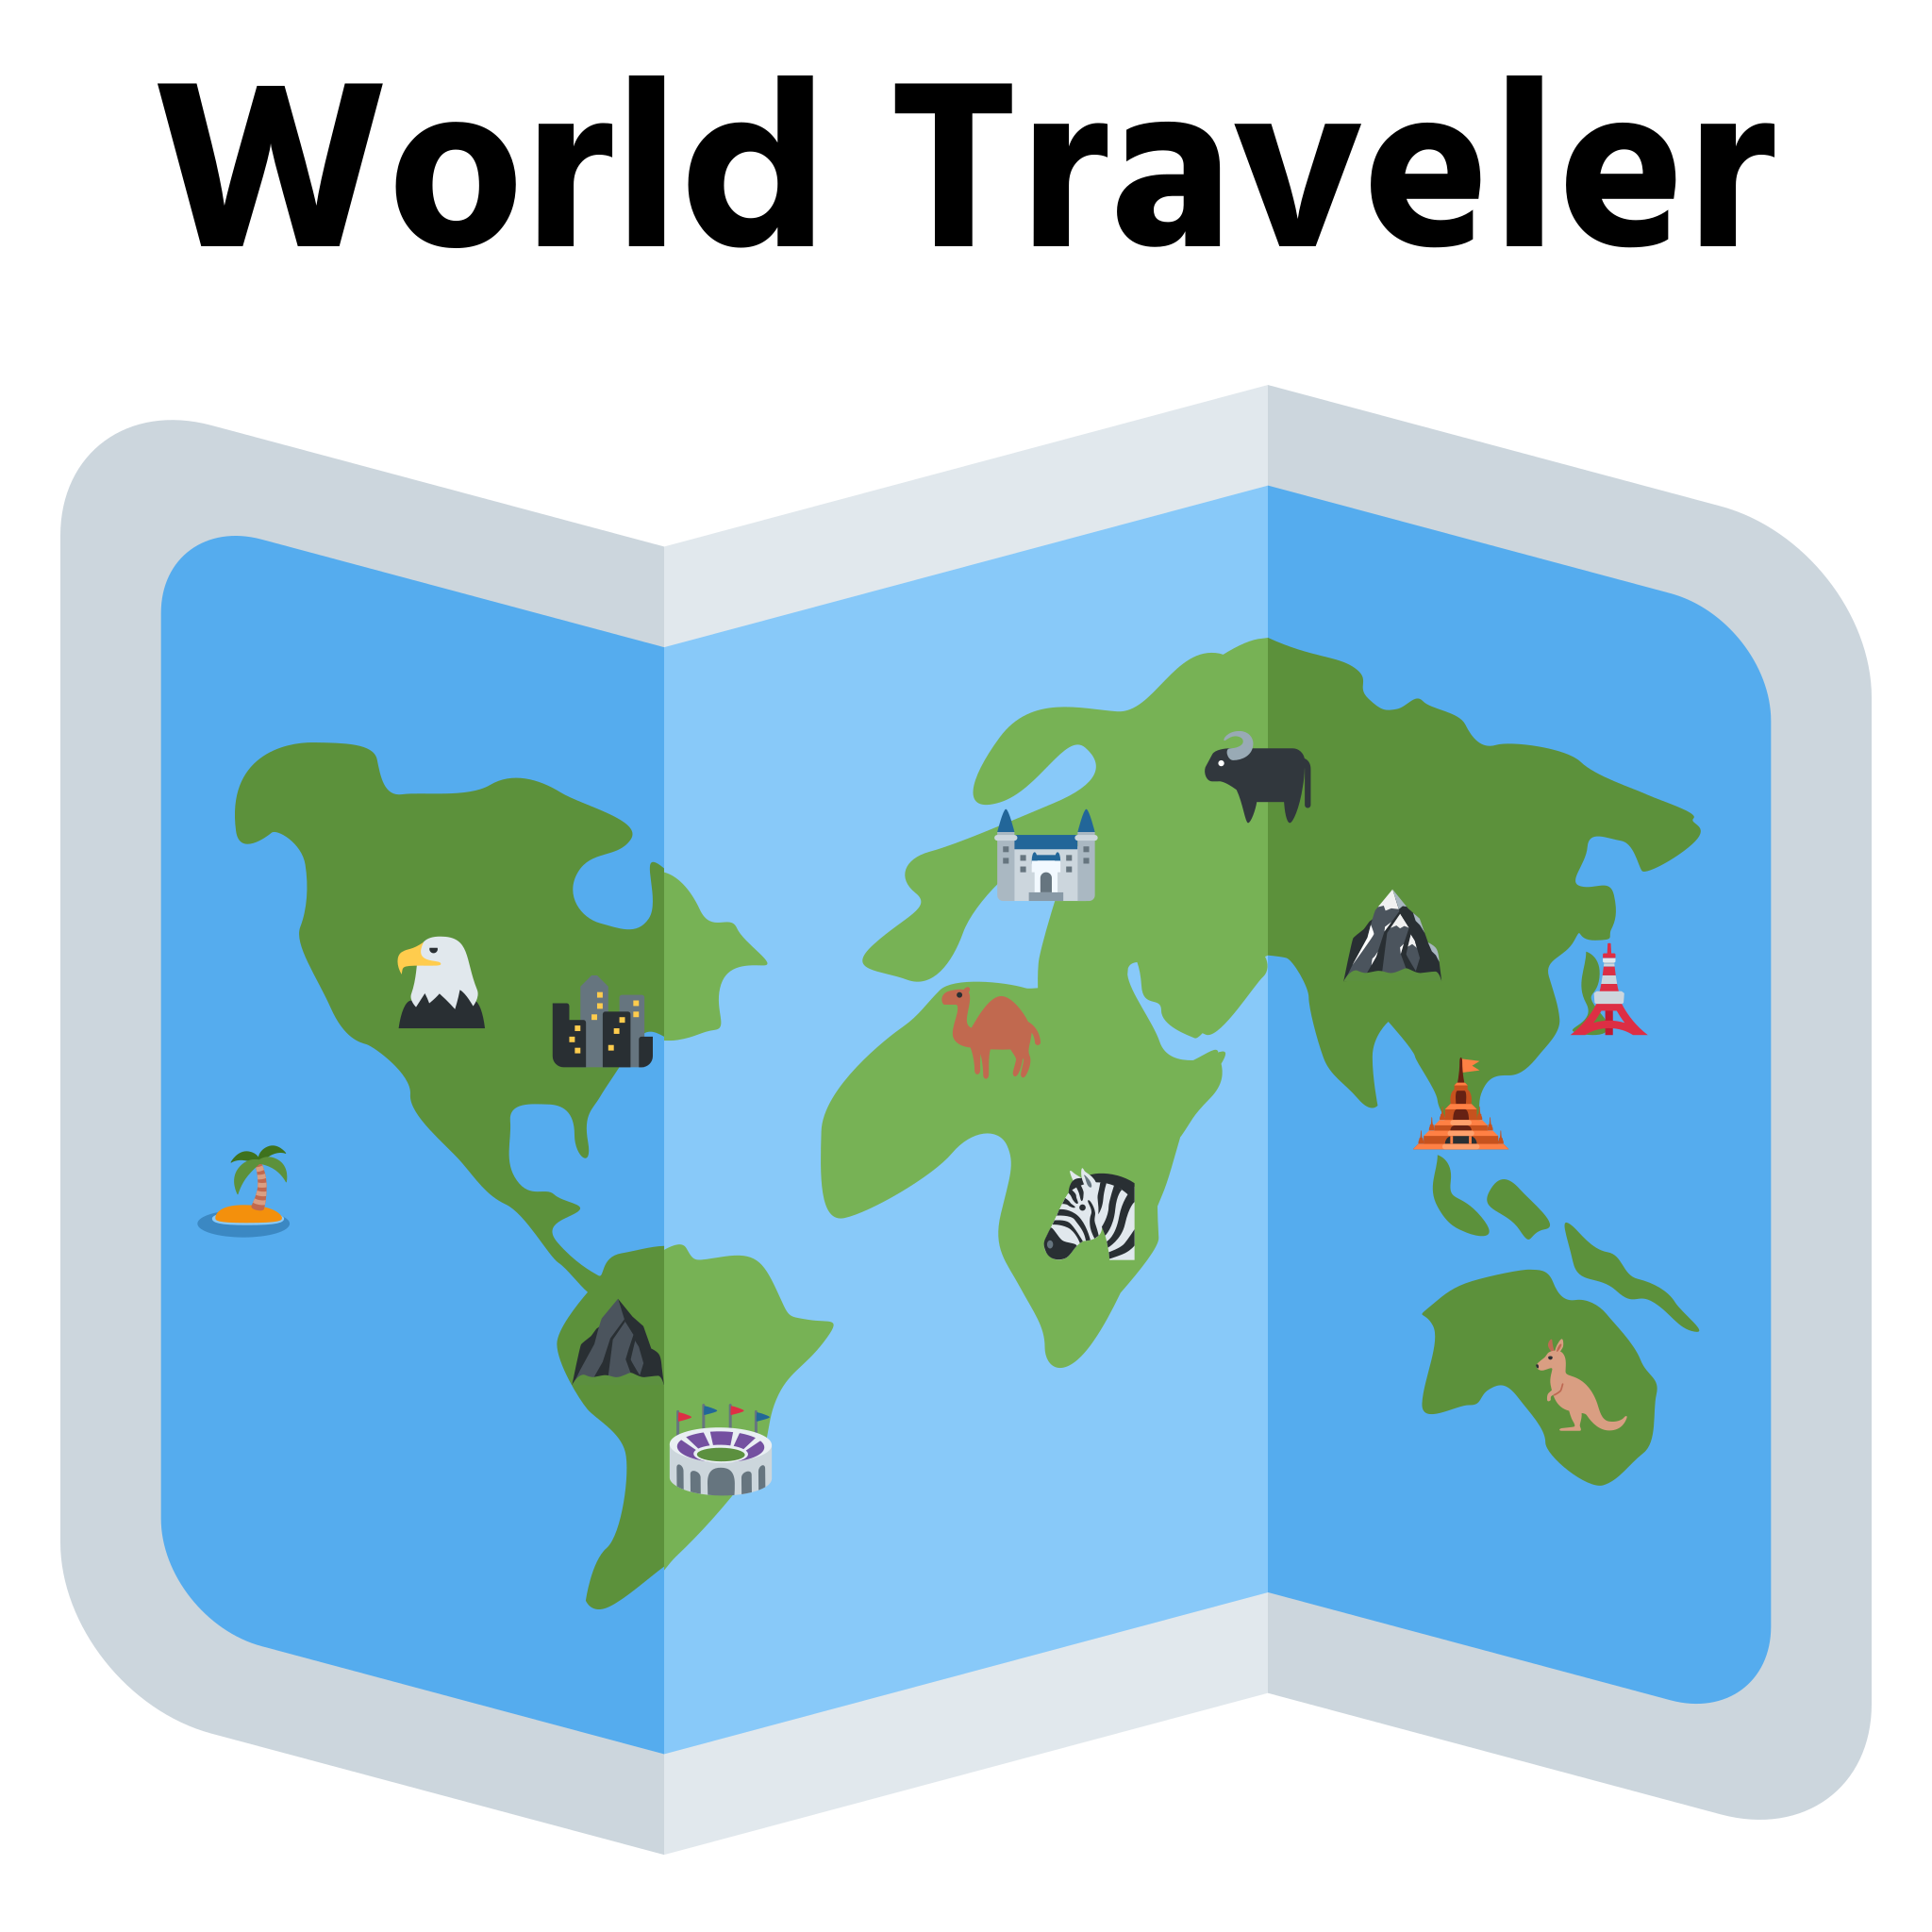 Emoji Riddles™: World Traveler by Sidework AI